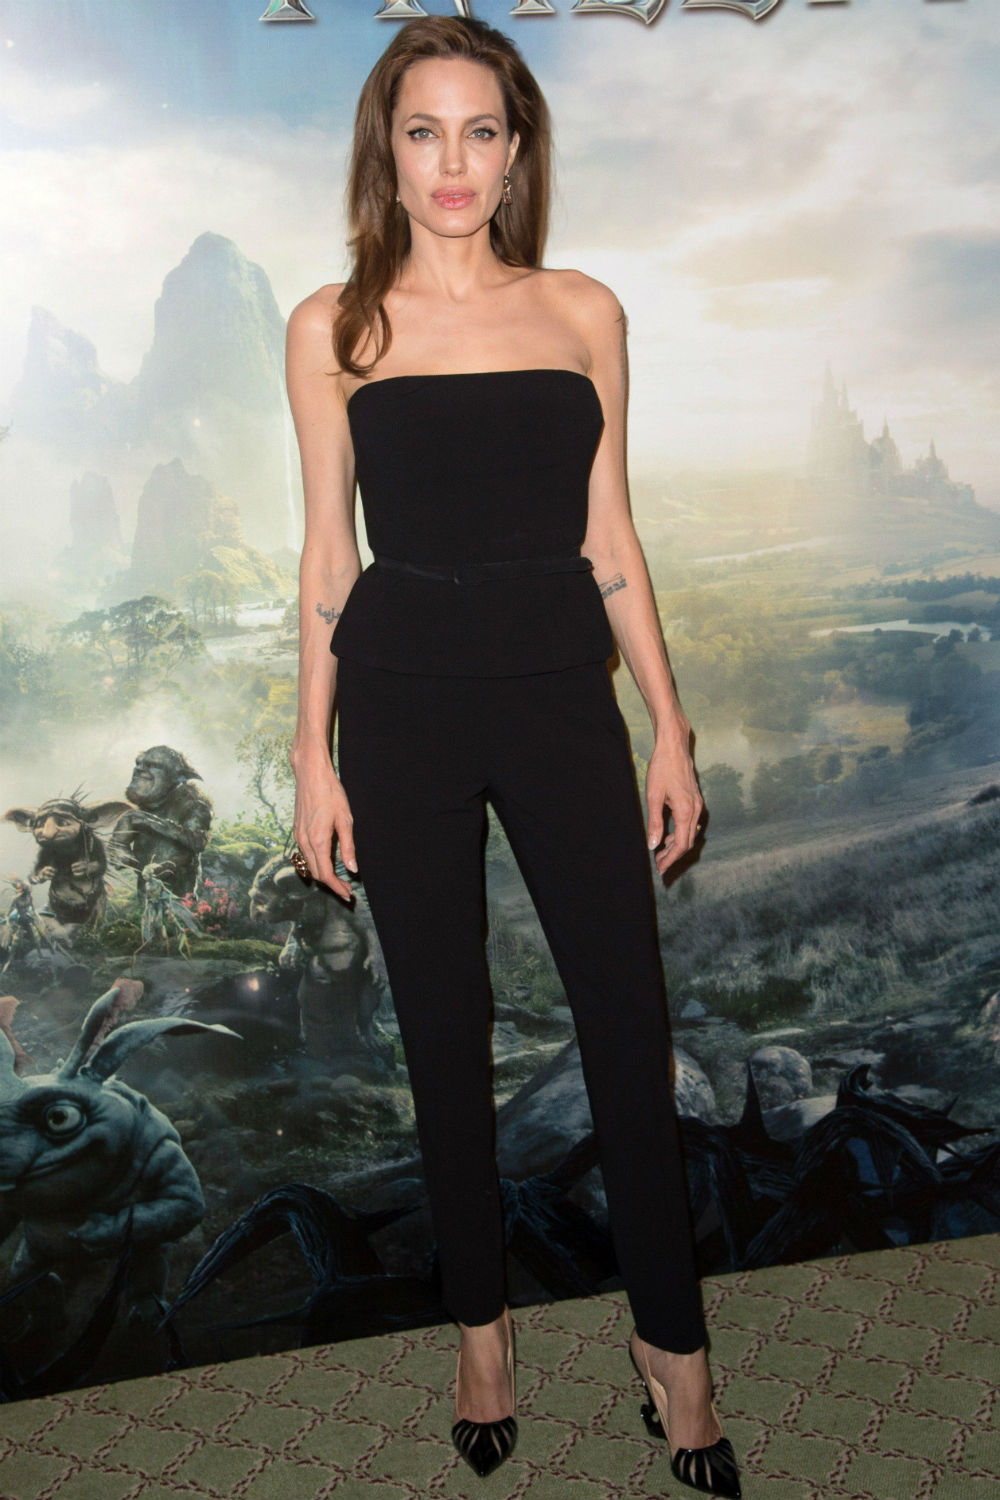 Angelina Jolie Wears Shoes With Horned Heels At The Maleficent Photocall